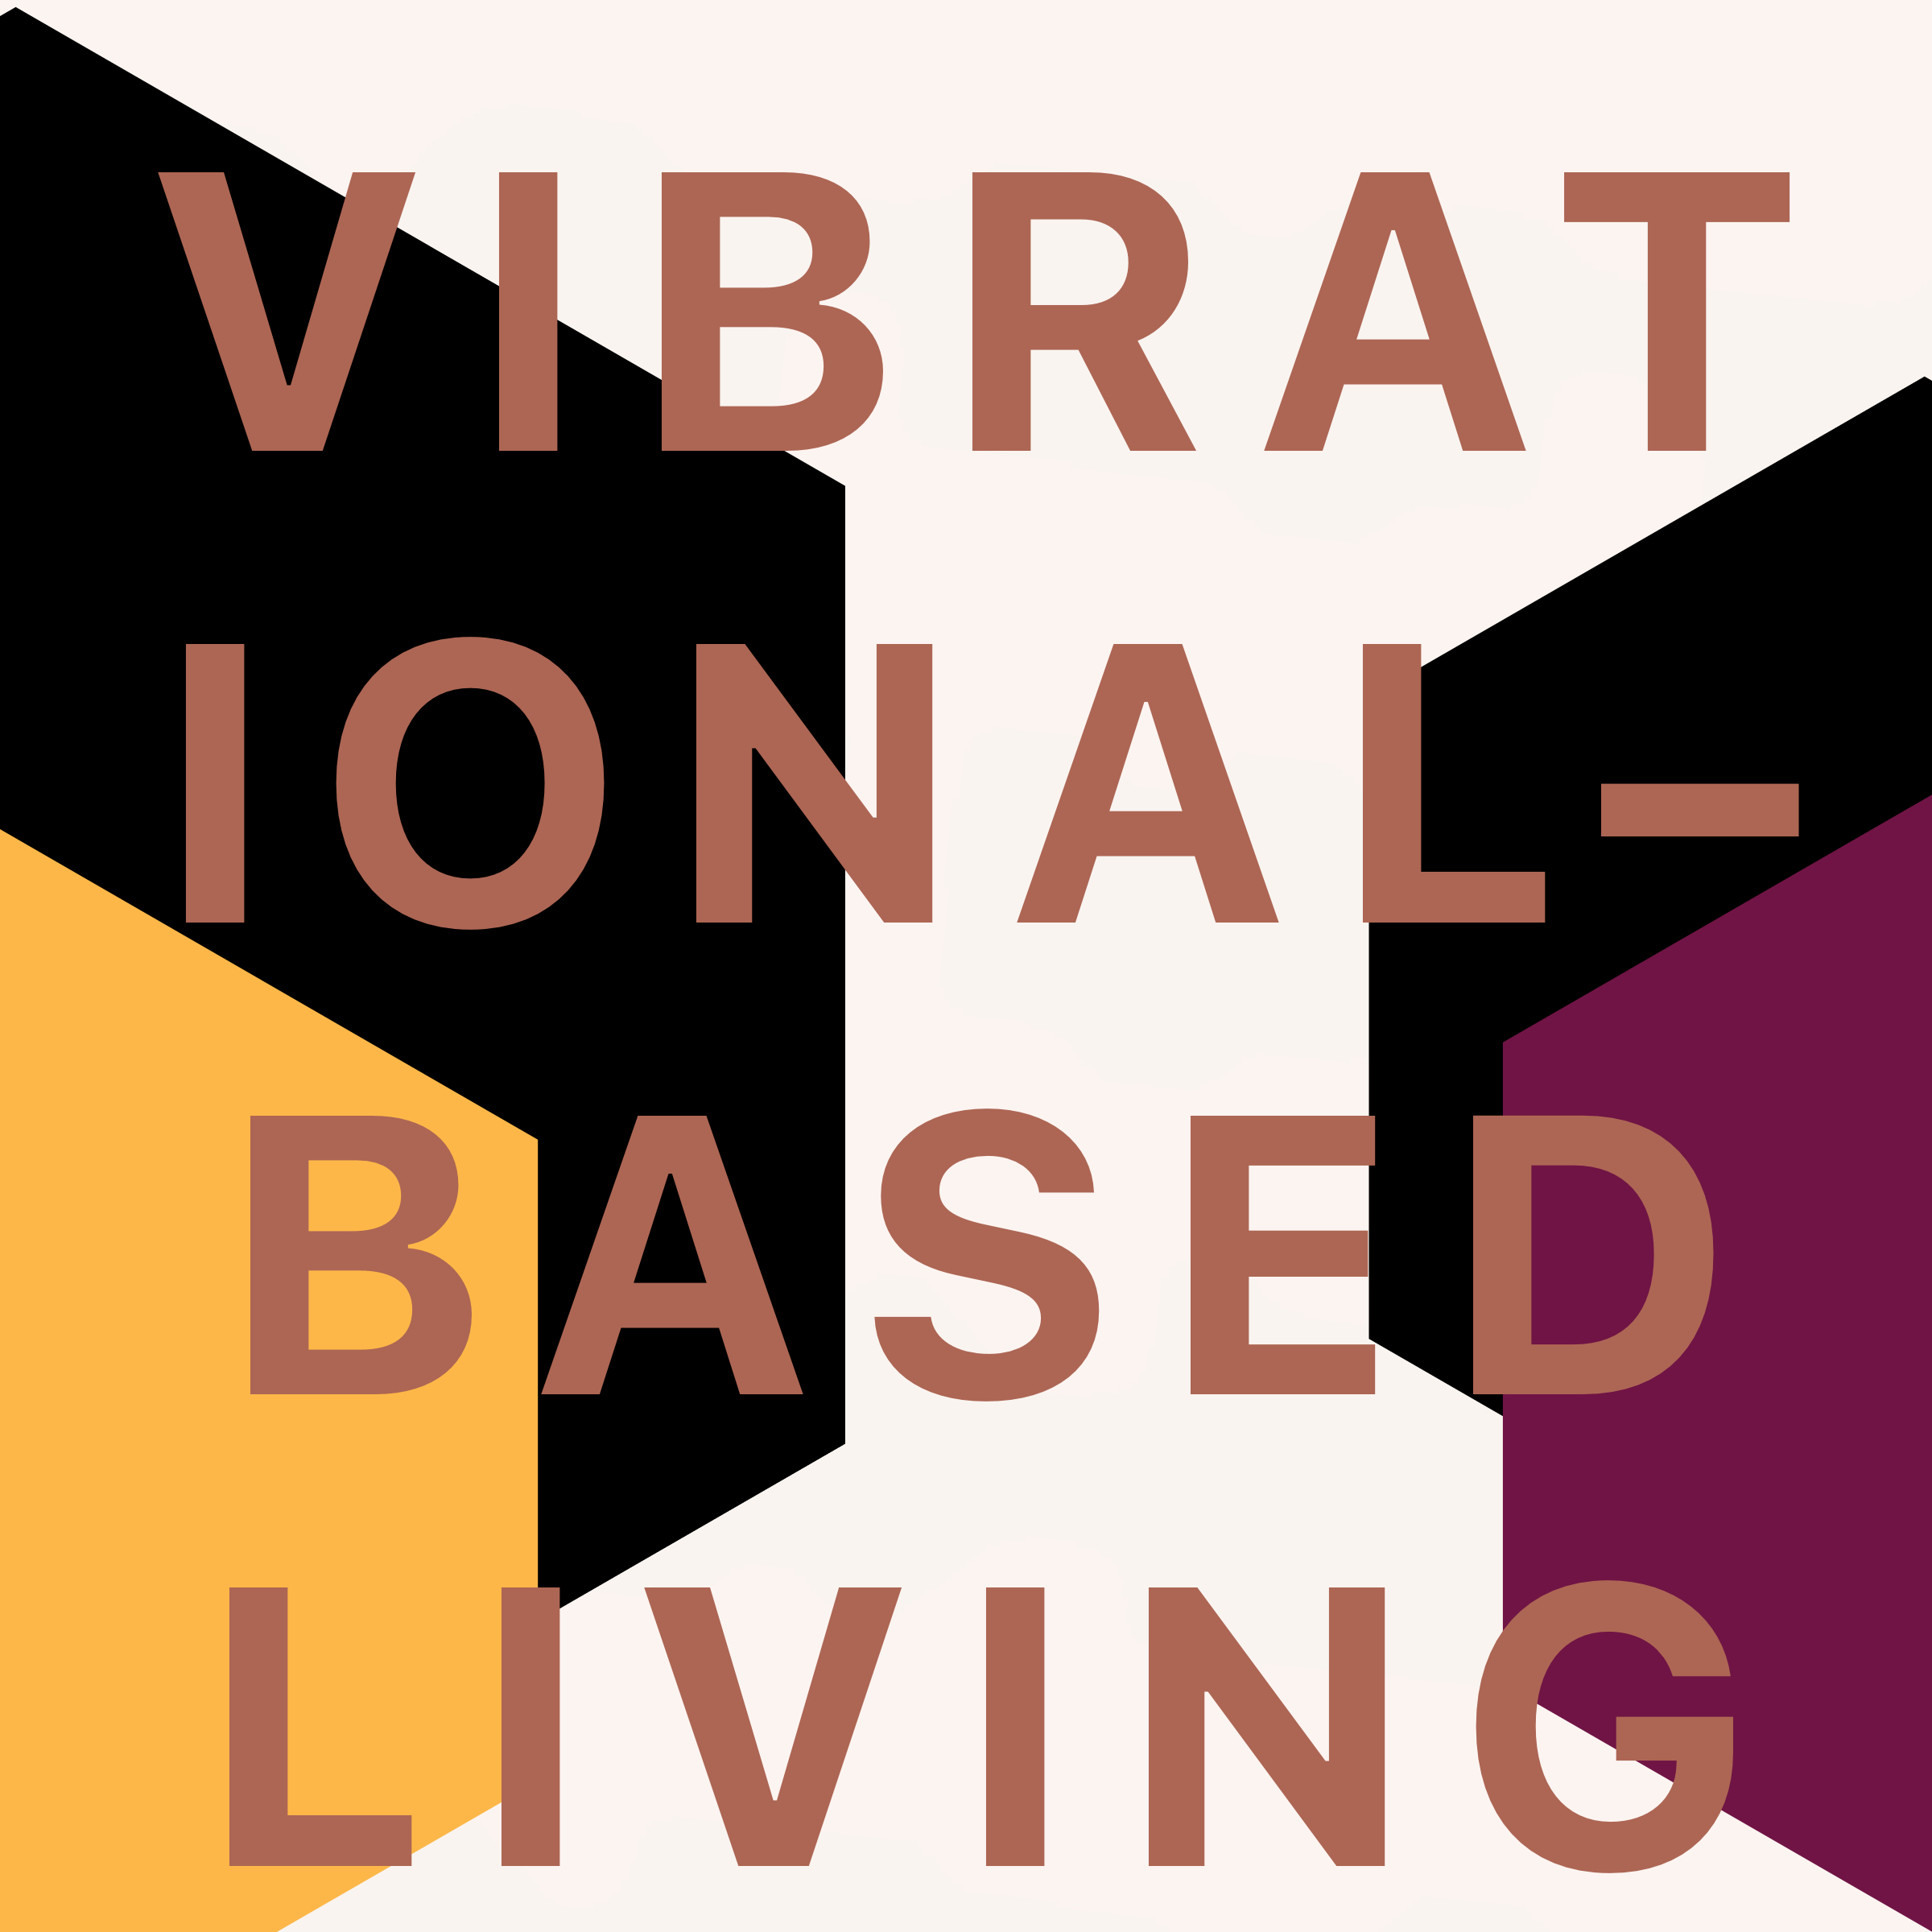 Learn the essentials of Vibrational-Based Living. - AN ONLINE CLASS | W/LALAH DELIALearn the knowledge, tools, and skills of Vibrational-Based Living in order to vibrate higher daily. There's higher path for you, and you can access it. Are you ready to access, explore, expand, and elevate?Of course you are! See you in class!To Prepare: set your positive intentions for the class, be prepared to take notes if you're a note taker, bring an open heart + mind.